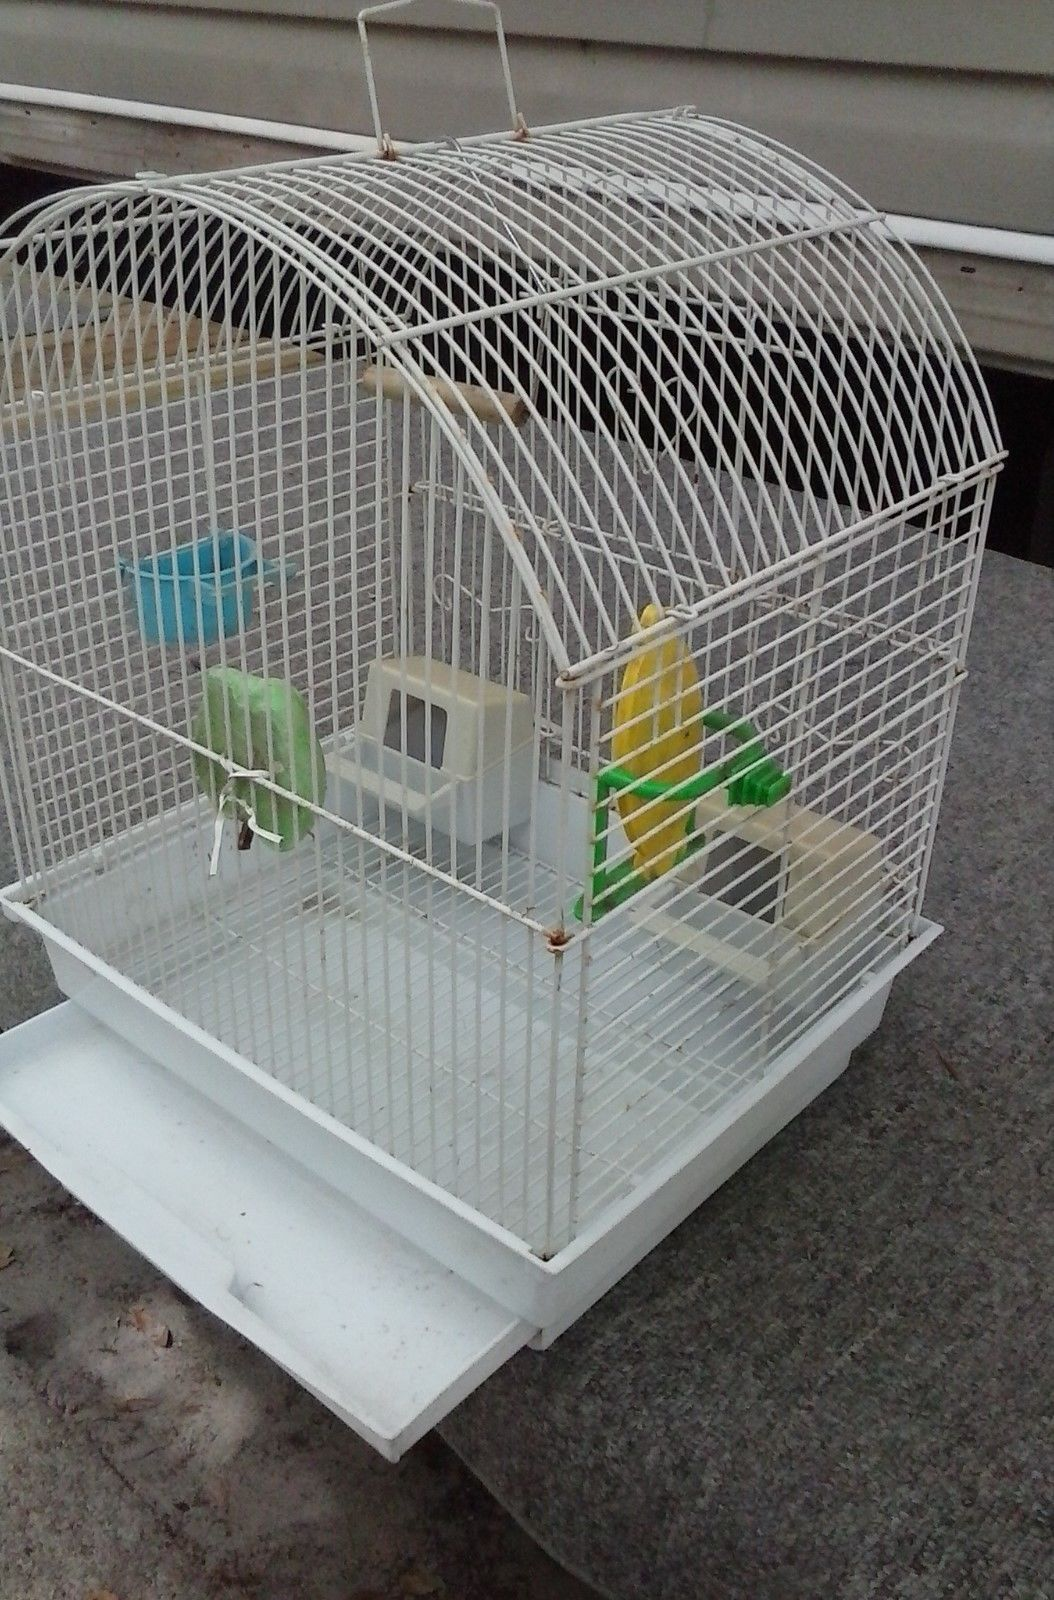 Bird Cages Used   Bird home   Pinterest   Bird cages and Birds